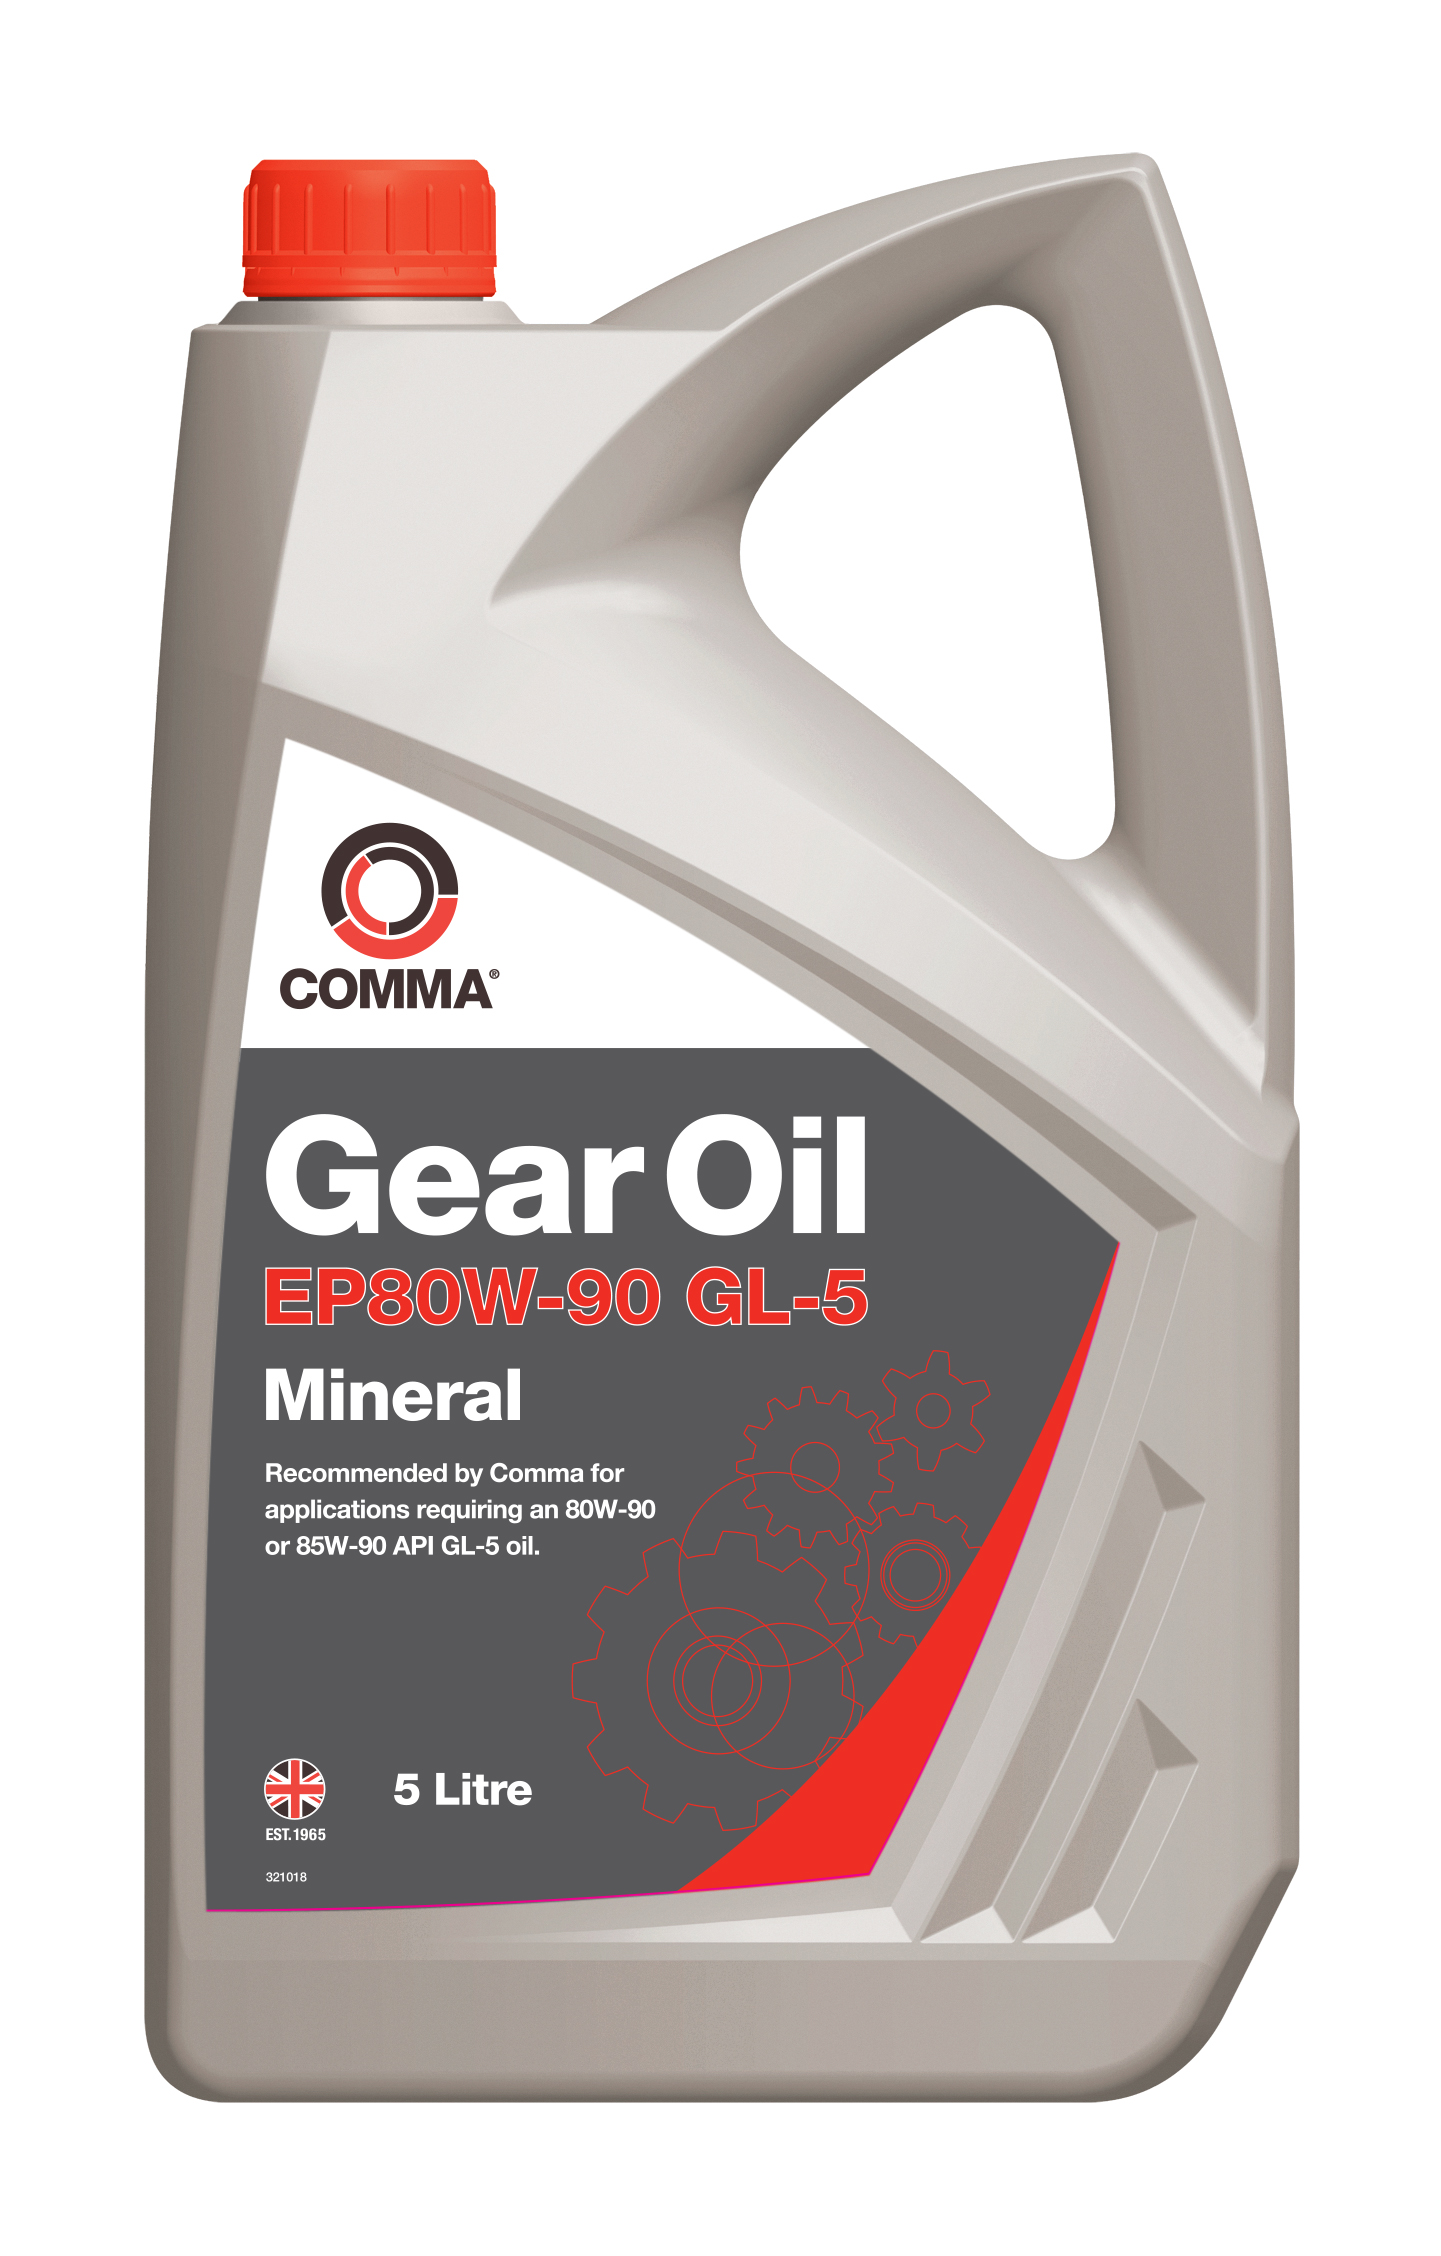 comma mineral gear oil ep80w 90 gl 5 5 litres ep80905l for. Black Bedroom Furniture Sets. Home Design Ideas